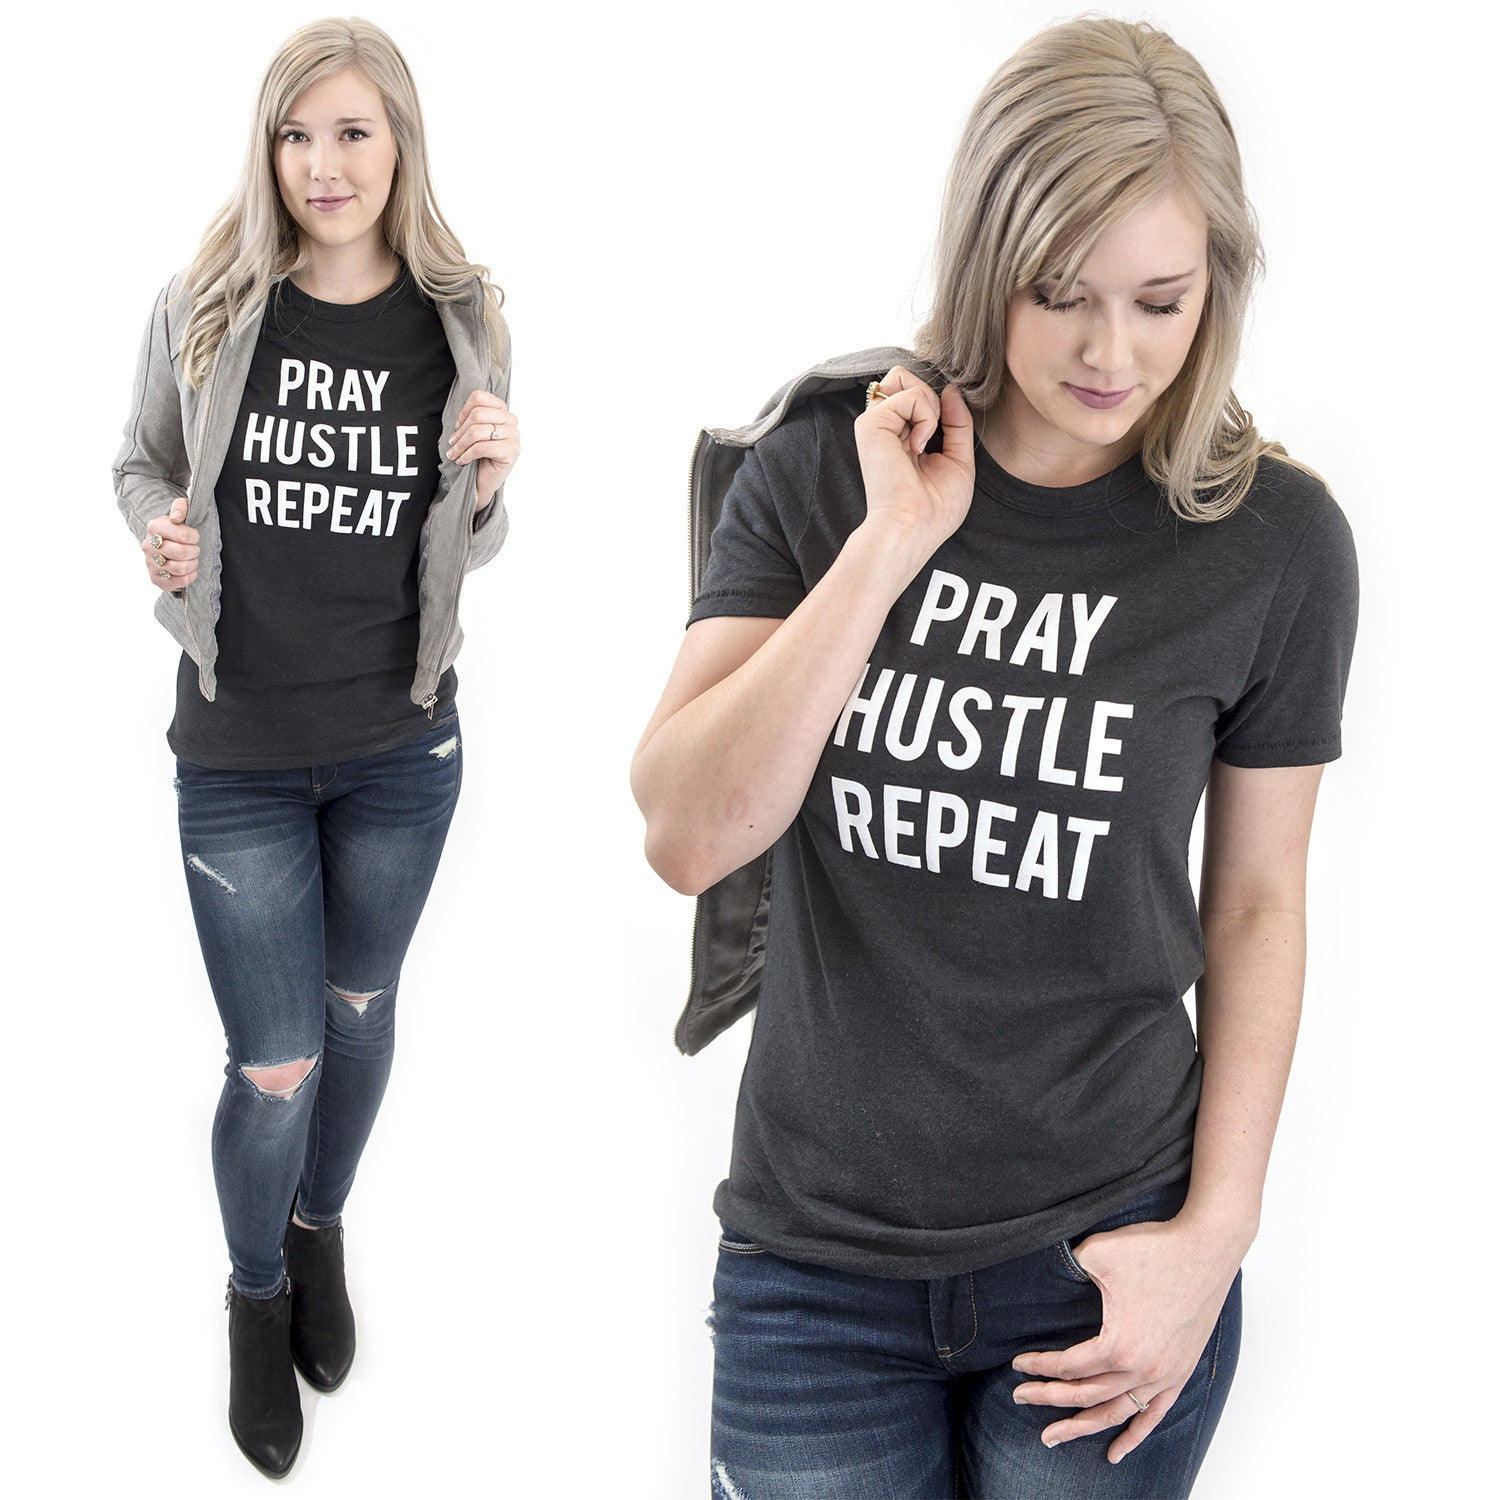 Pray Hustle Repeat Christian graphic tee at Eccentrics Boutique